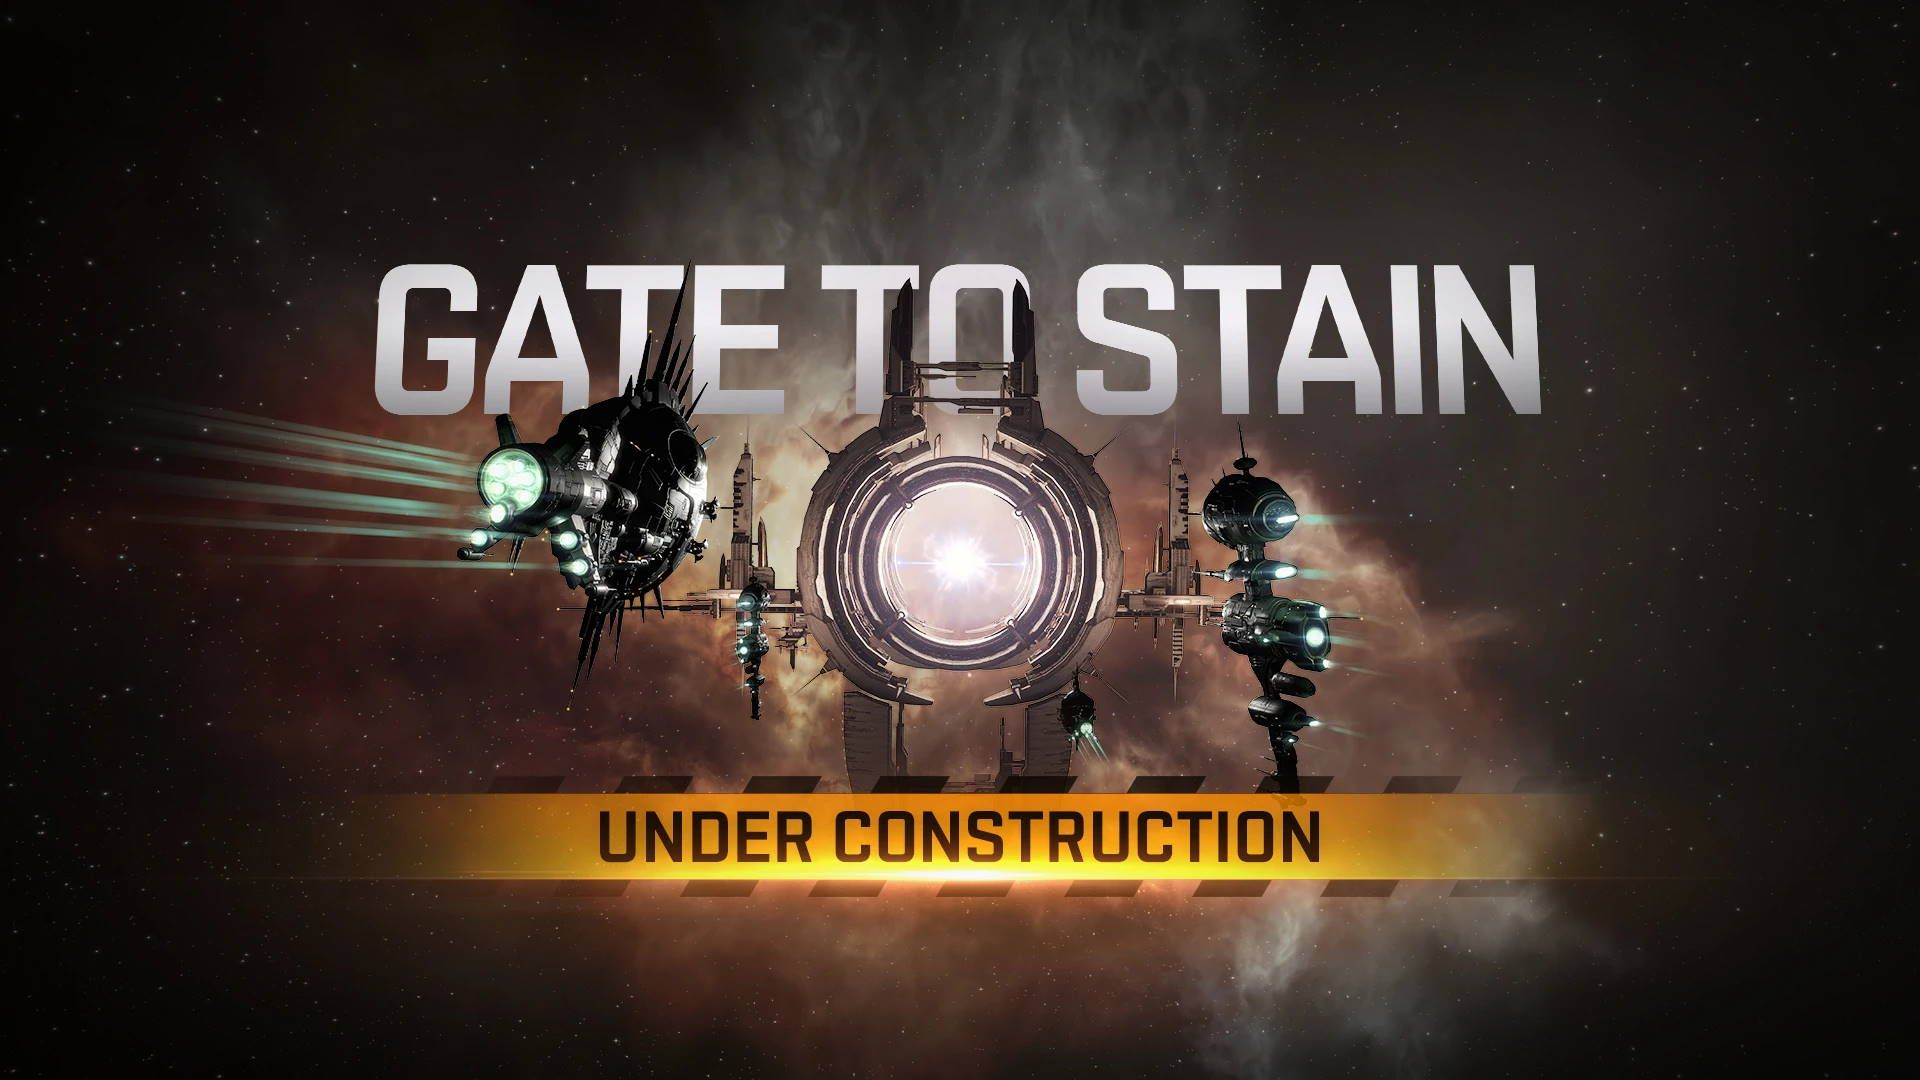 EVE Online Gate To Stain April Fool's 2021